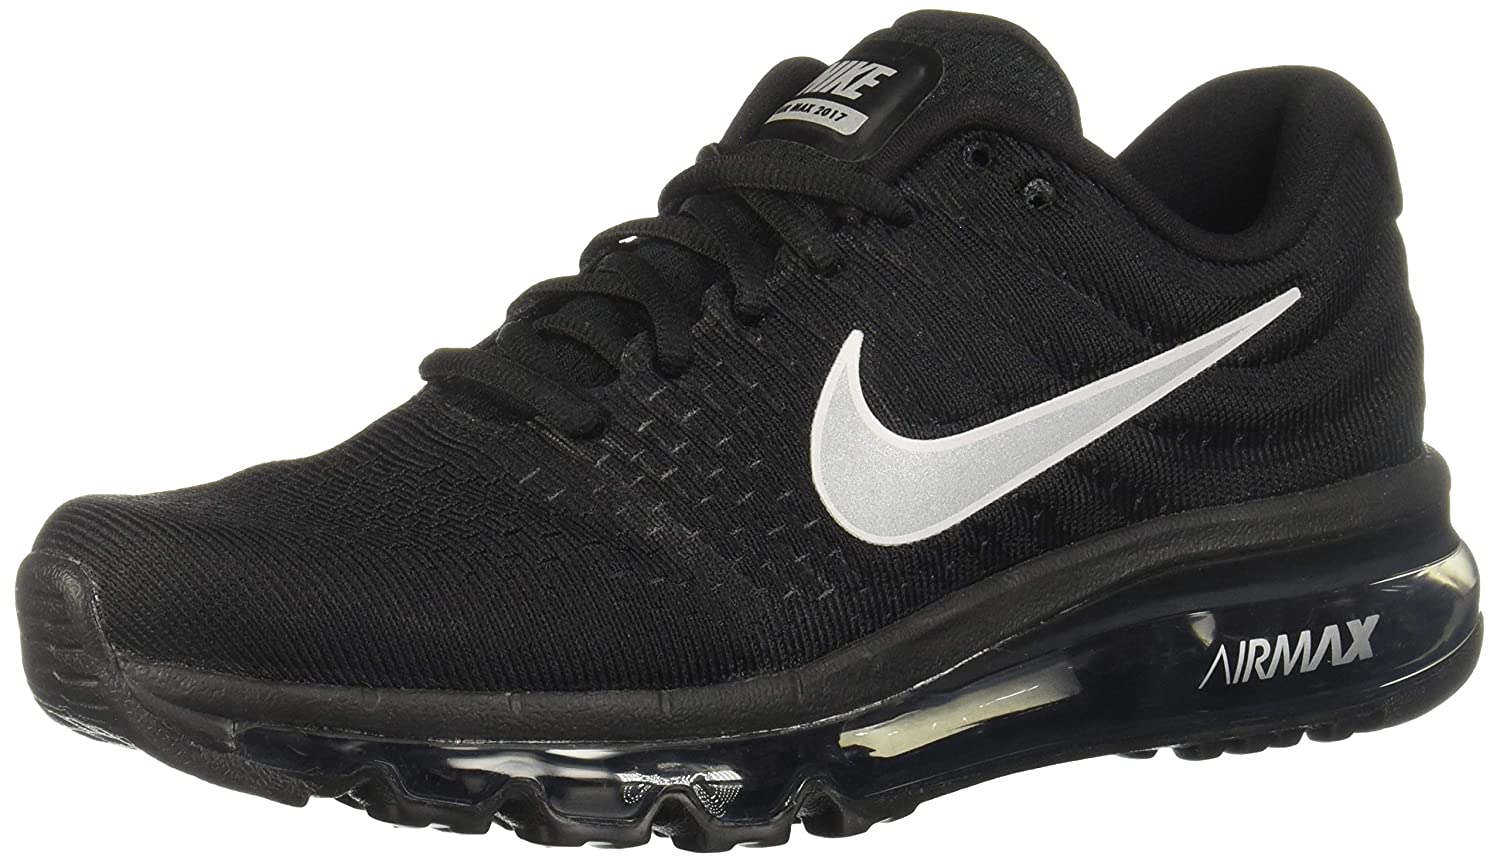 53c72022abfa9 Amazon.com | Nike Womens Air Max 2017 Running Shoes Black/White/Anthracite  849560-001 Size 10 | Road Running